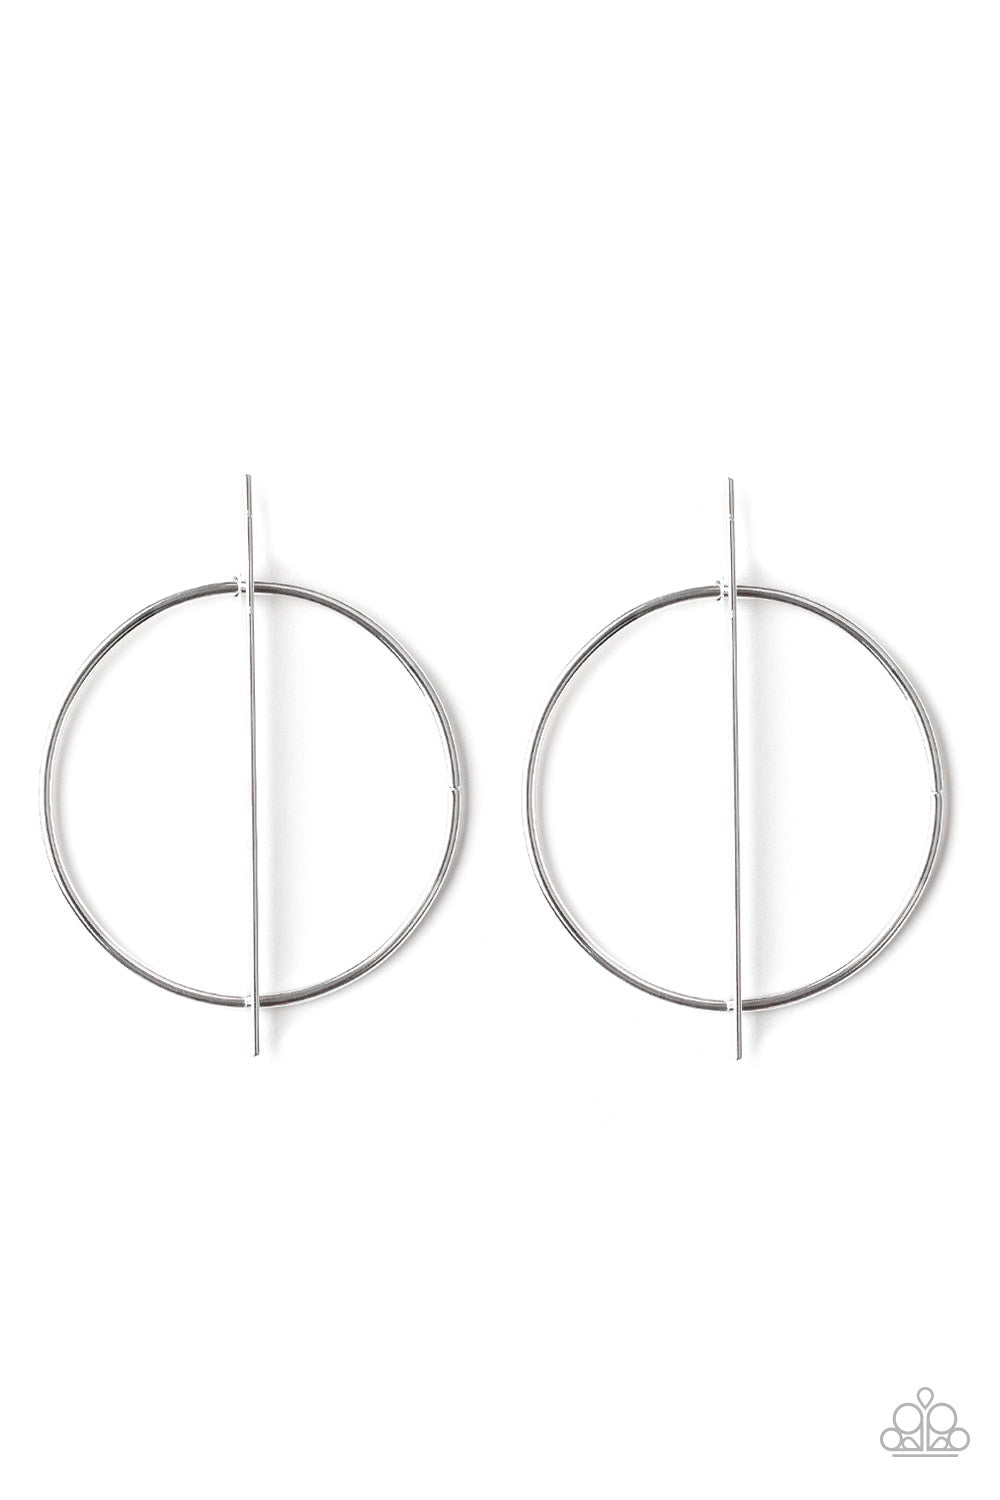 Paparazzi Vogue Visionary's Hoop Earring- Silver